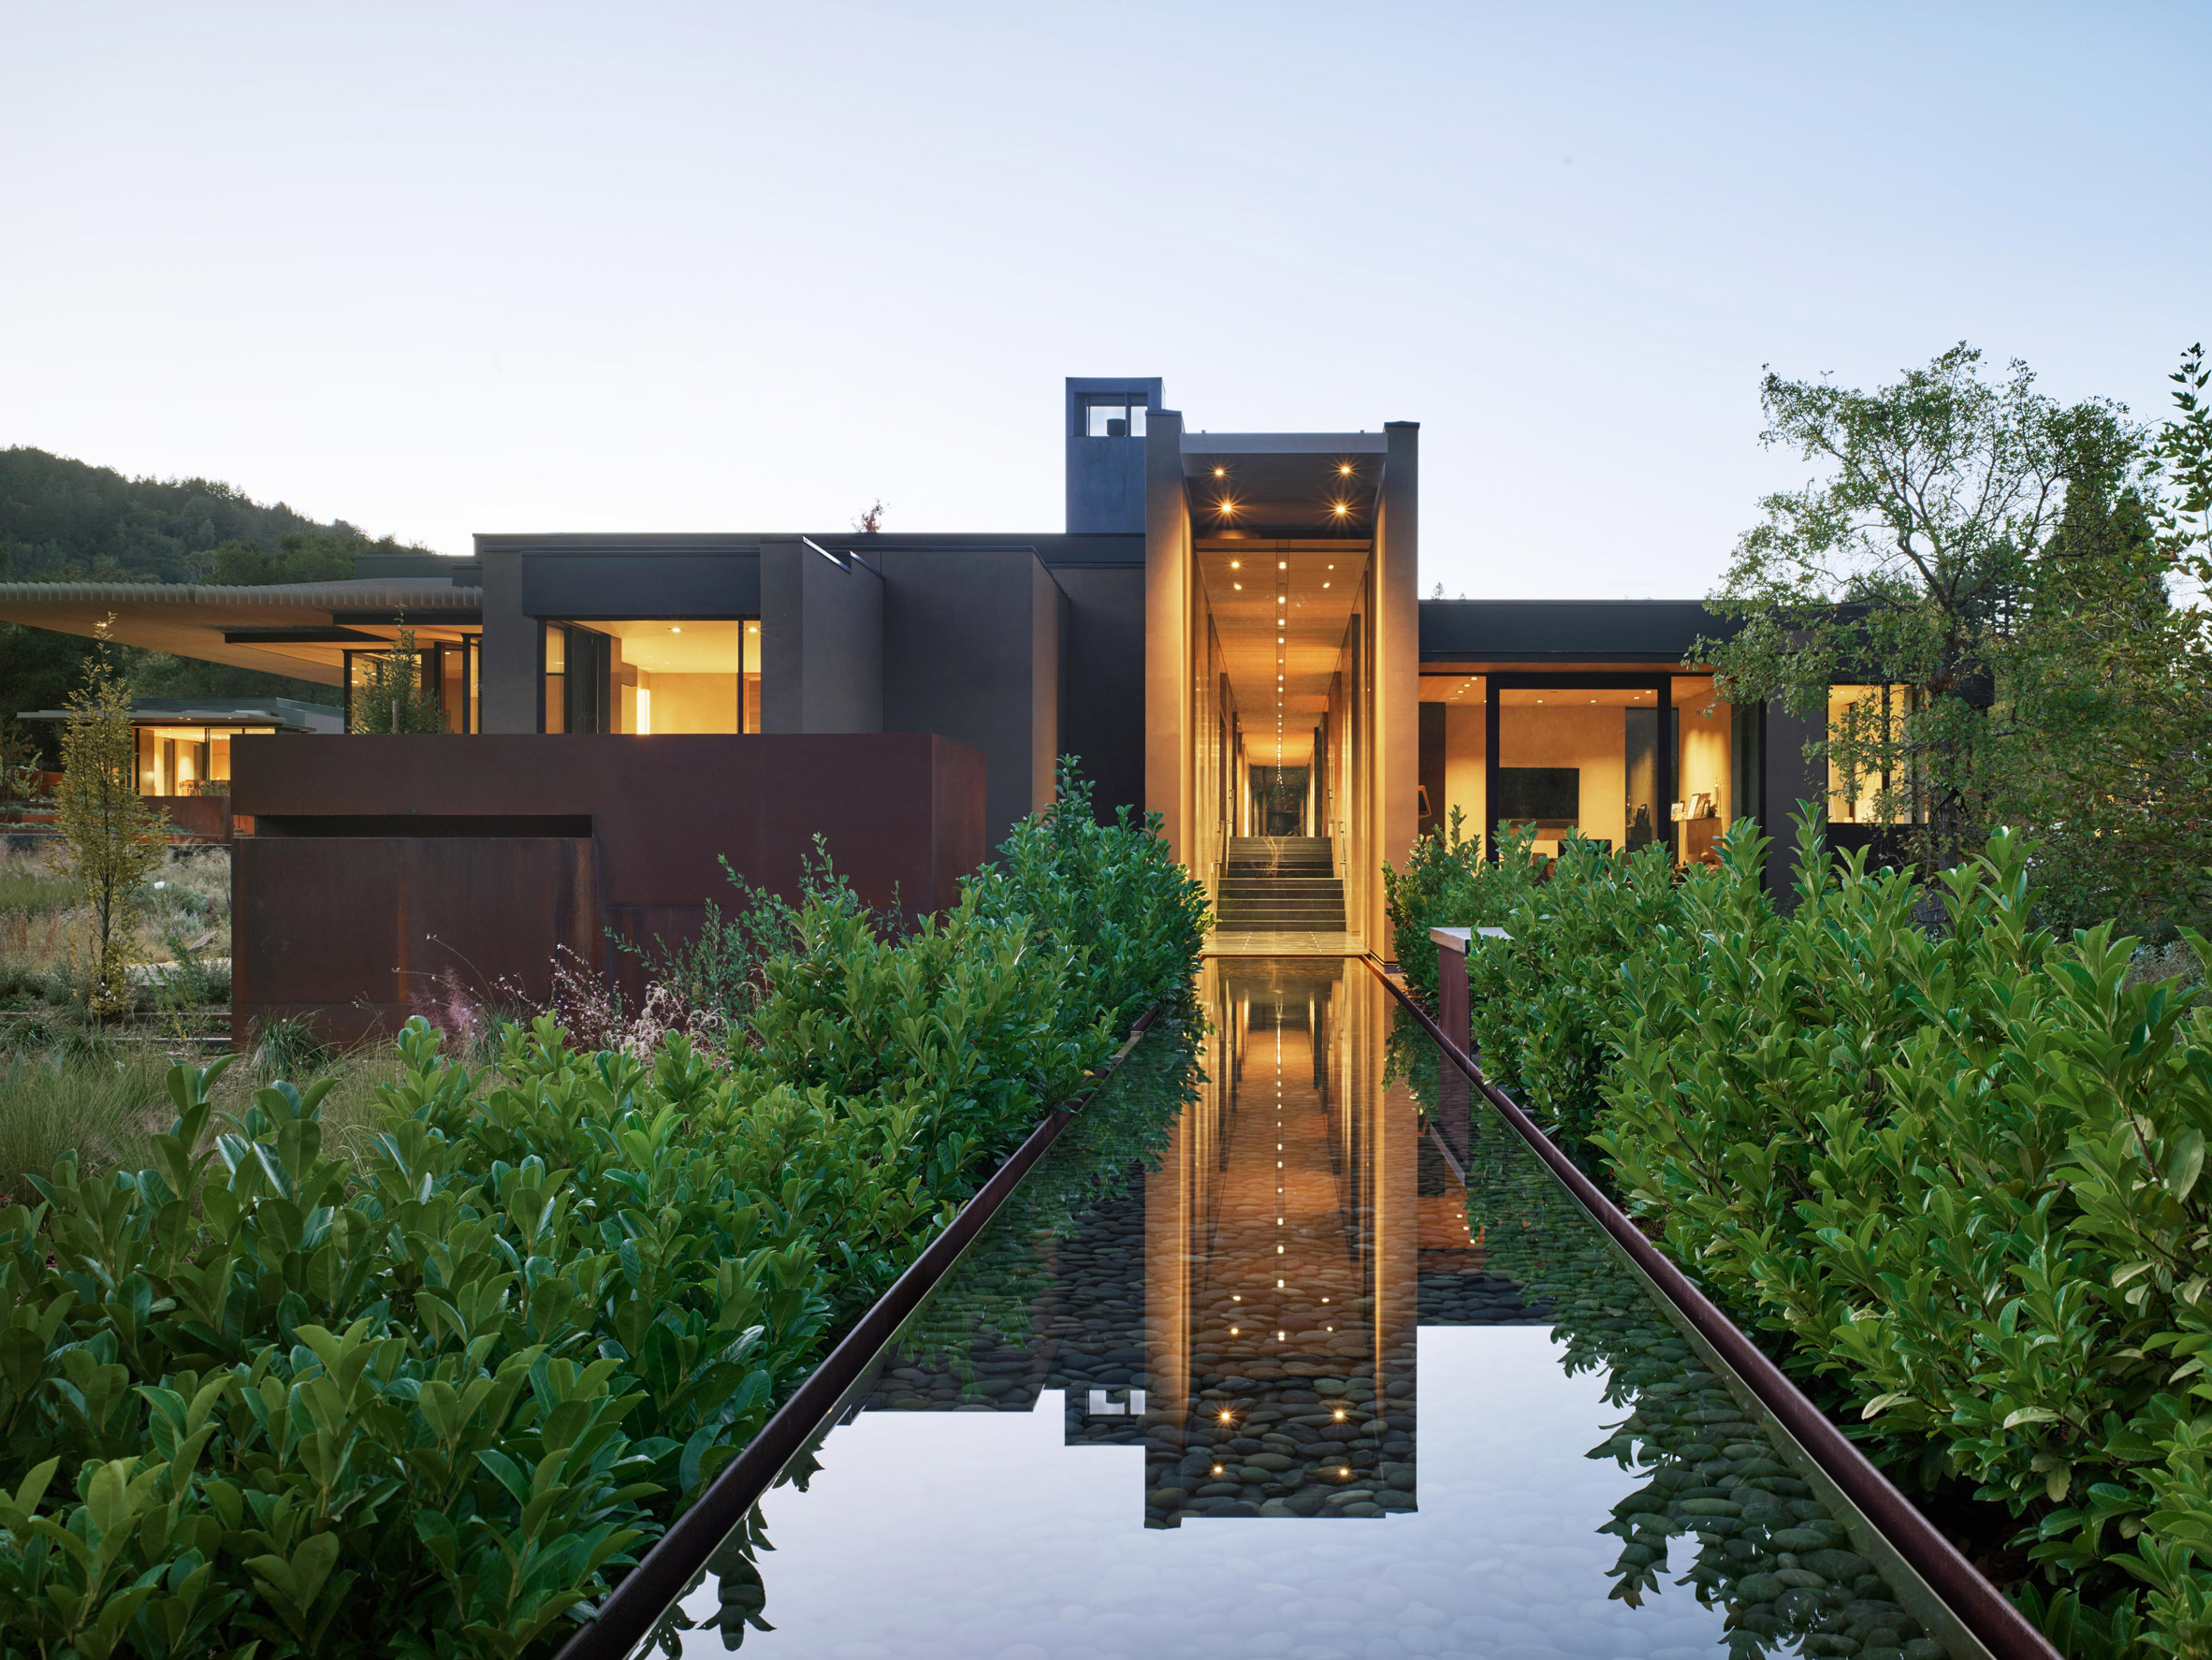 Reflecting pools in the residence